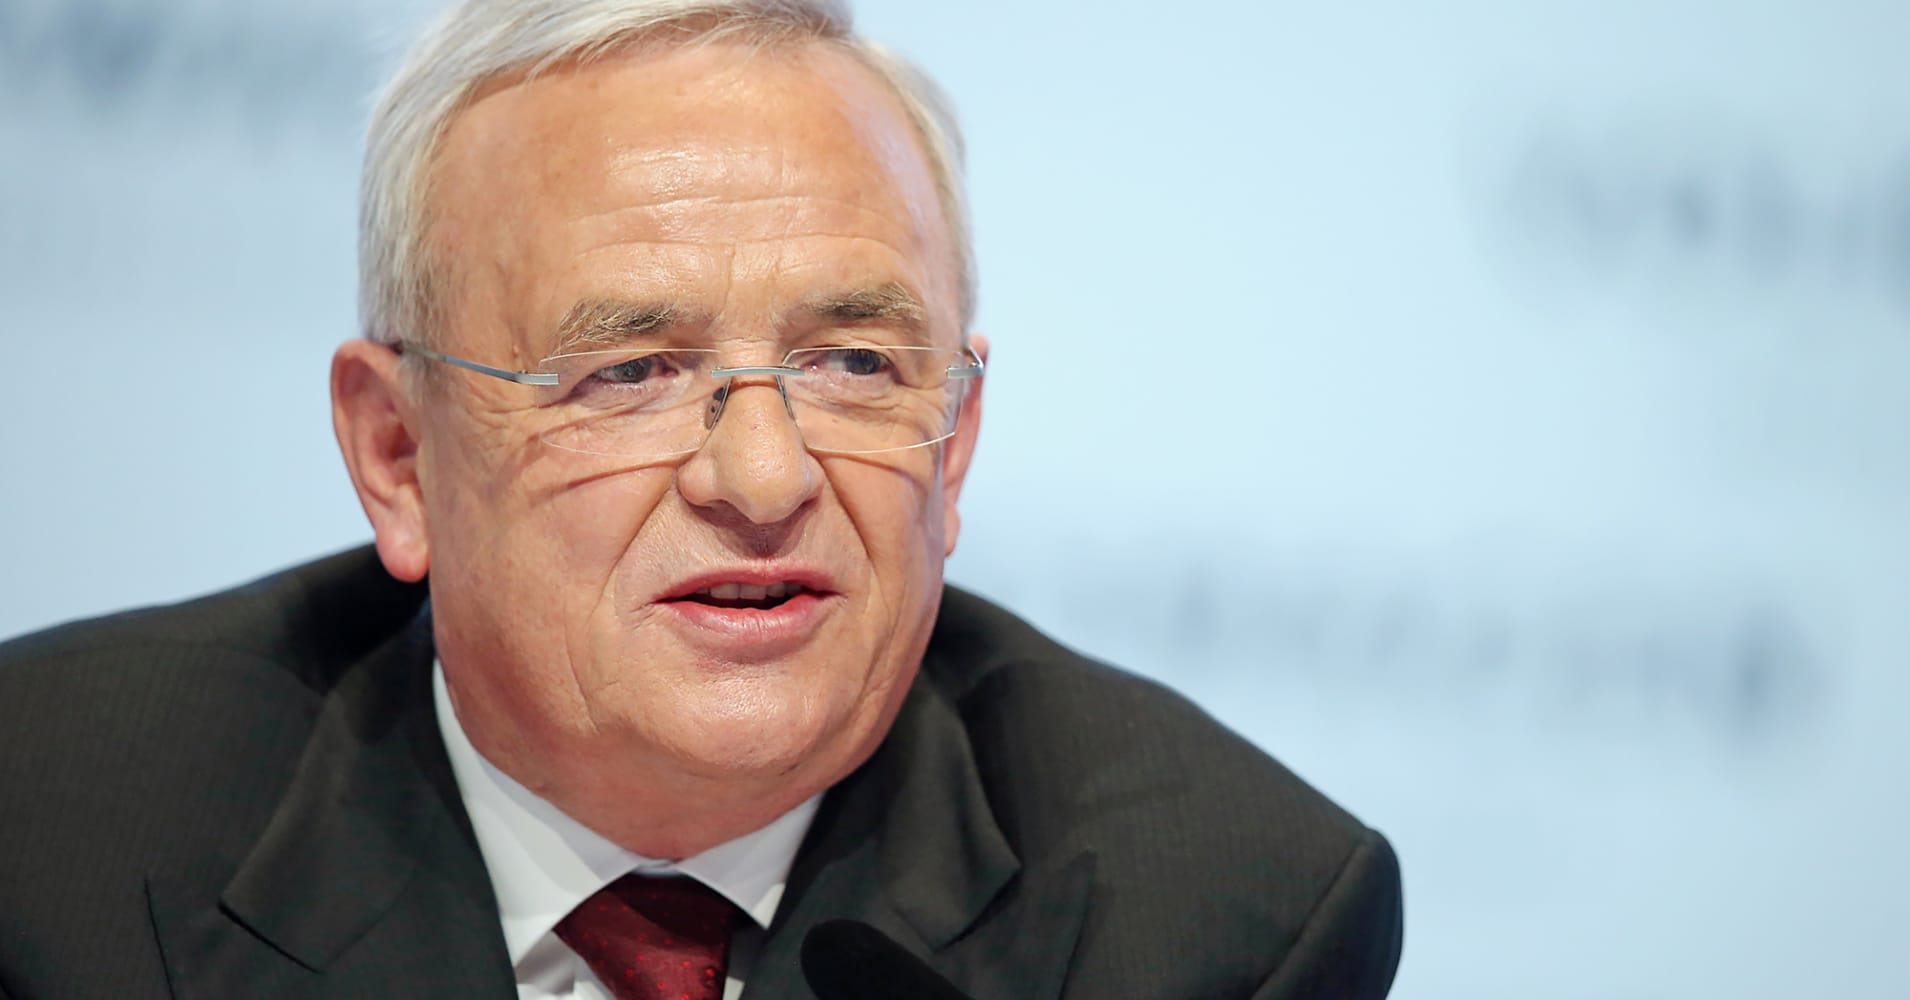 Ex-VW CEO: 'I would have stopped' the cheating but 'I wasn't informed'